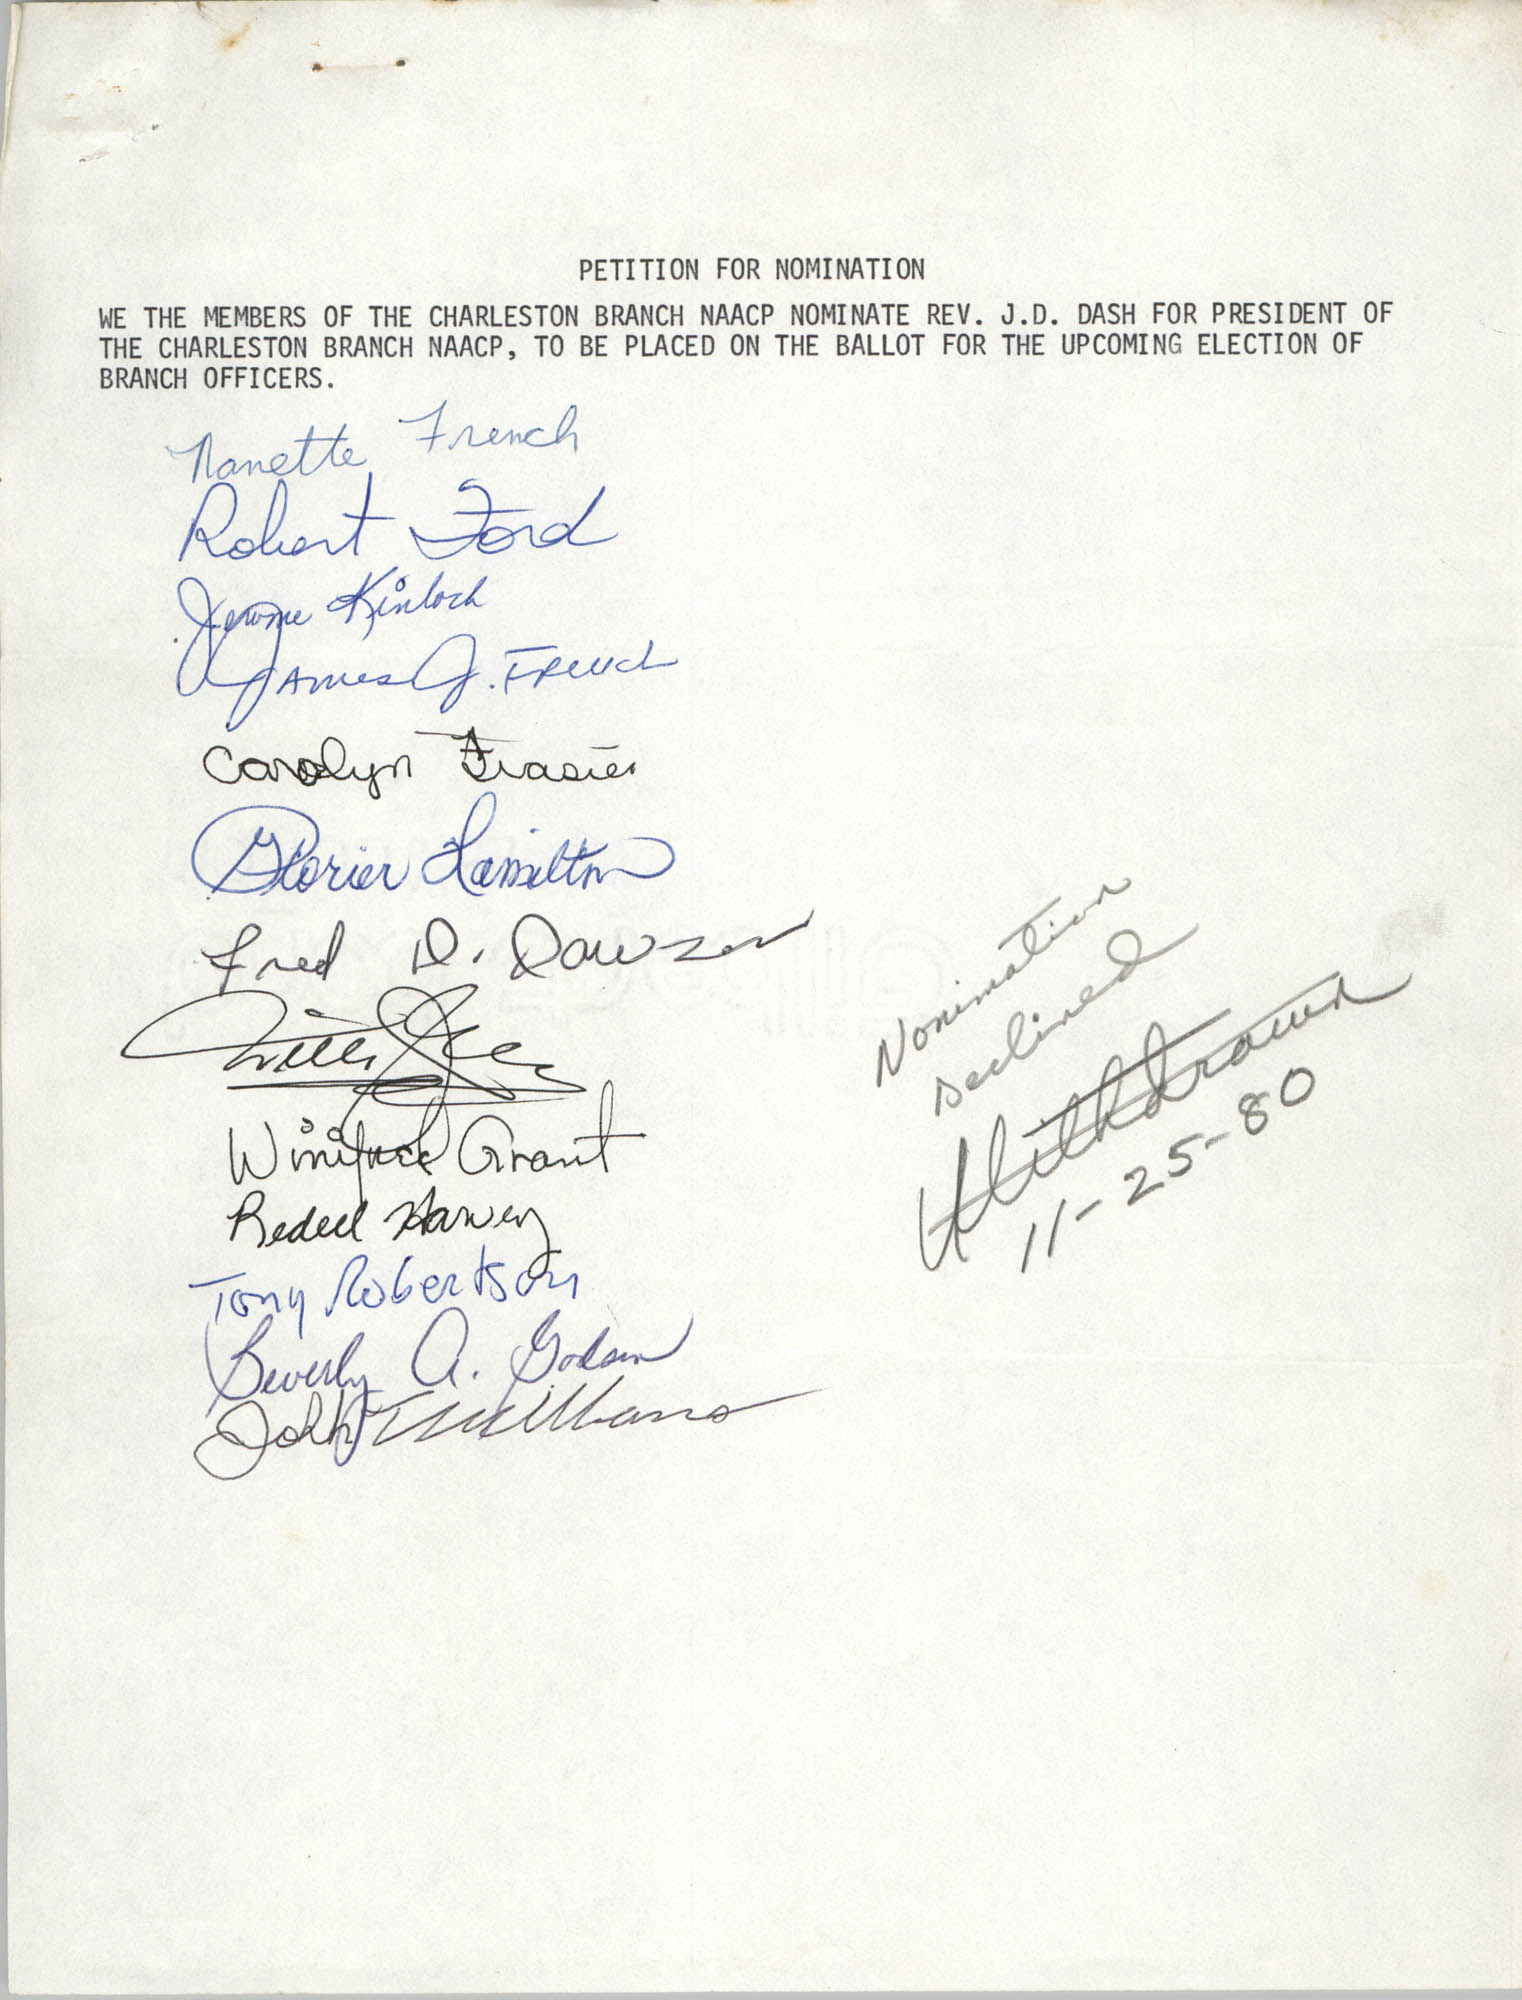 Charleston Branch of the NAACP Election Materials, Petition for Nomination 1